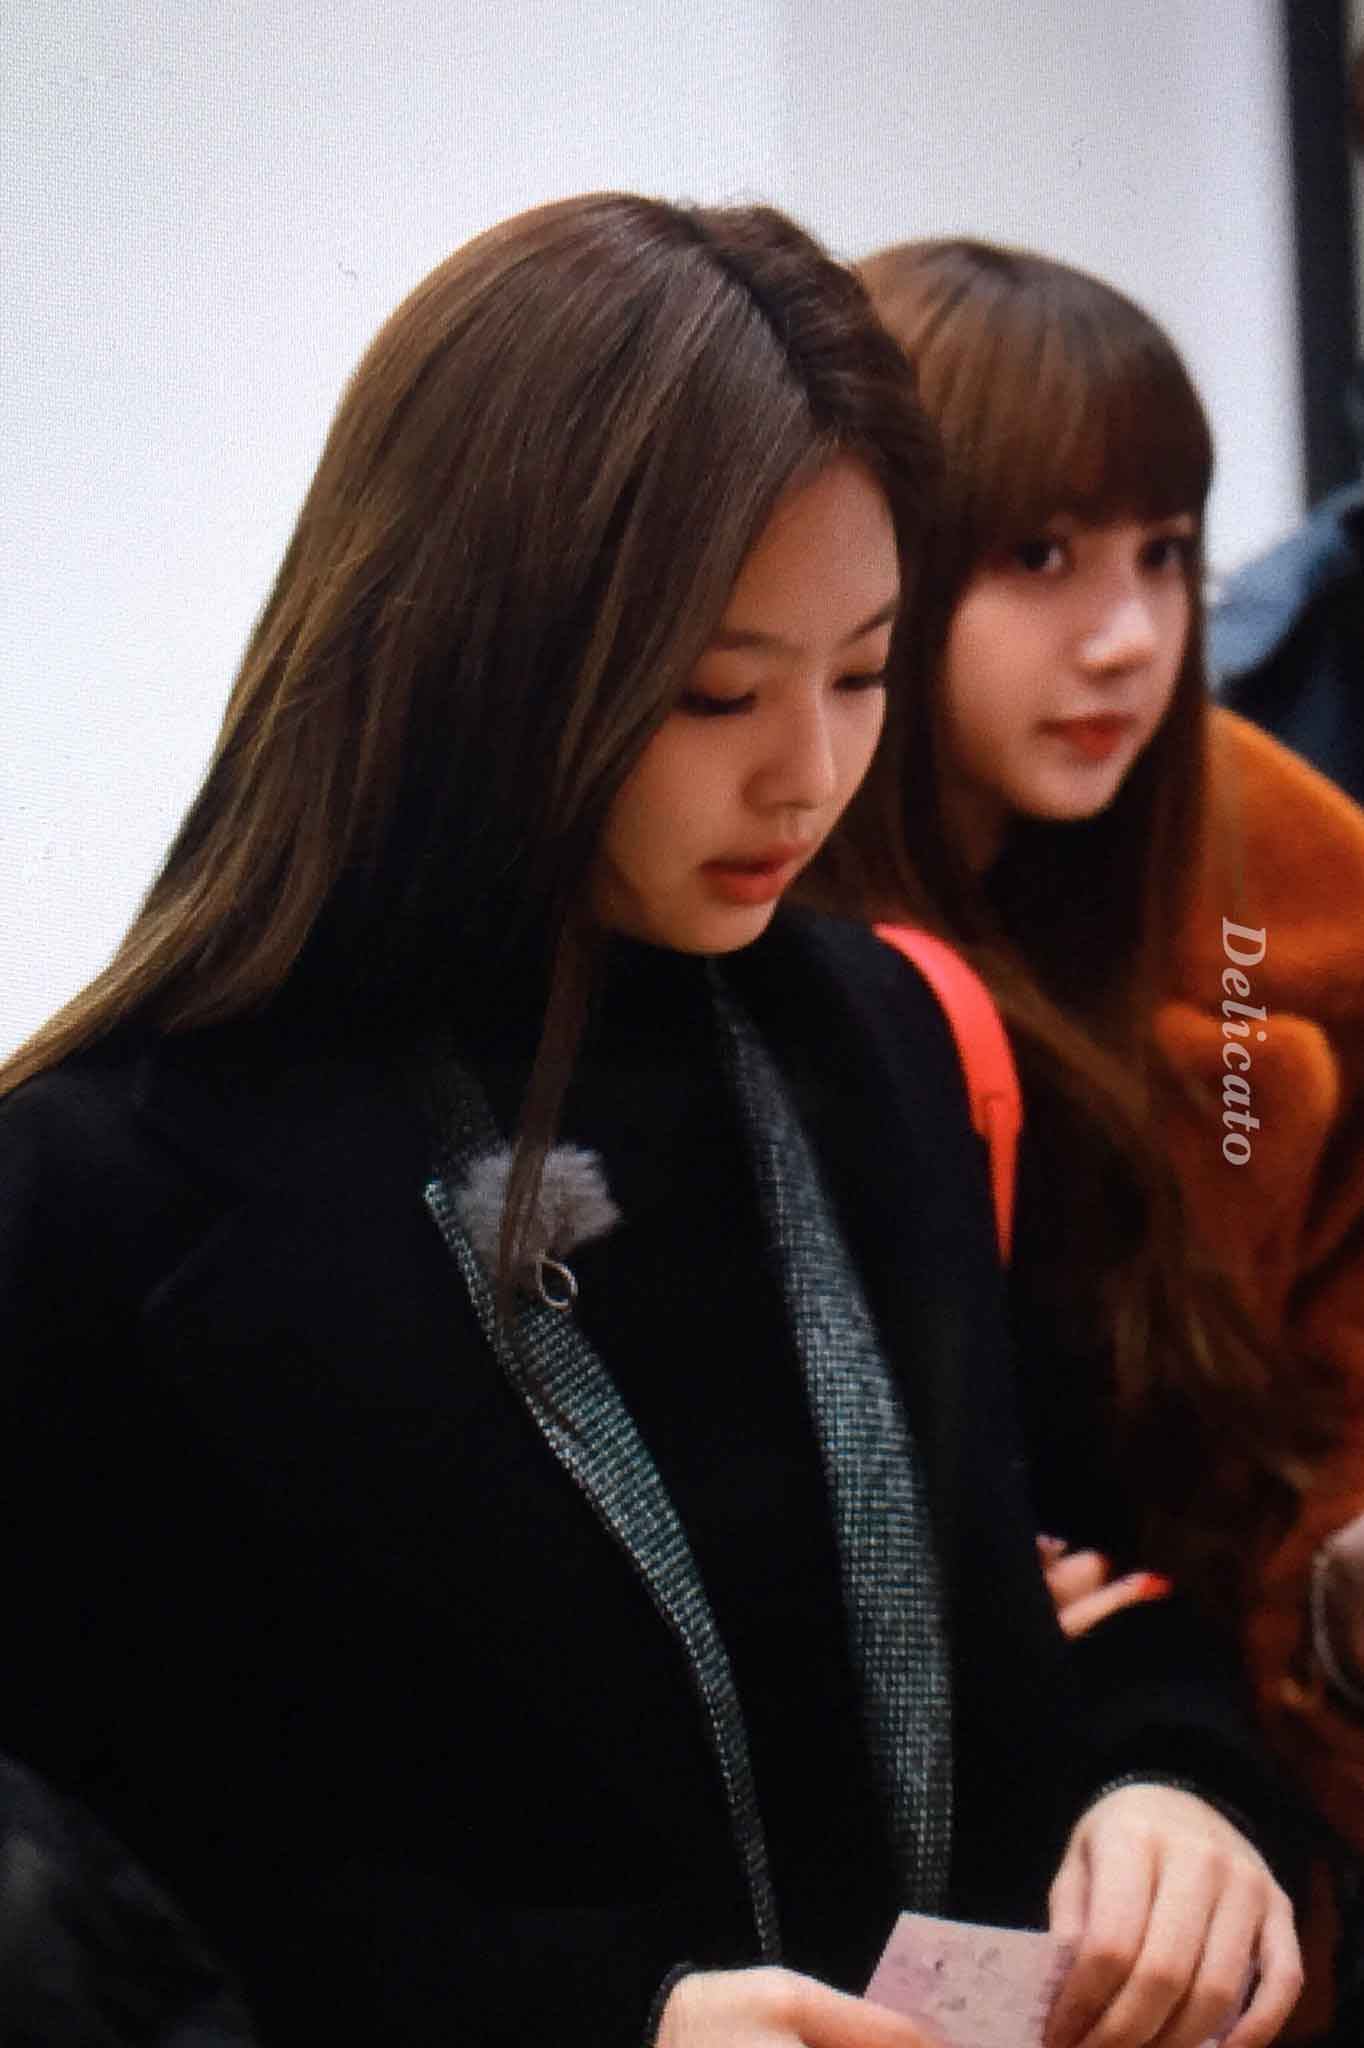 Awesome Blackpink House Lisa And Jennie wallpapers to download for free greenvirals